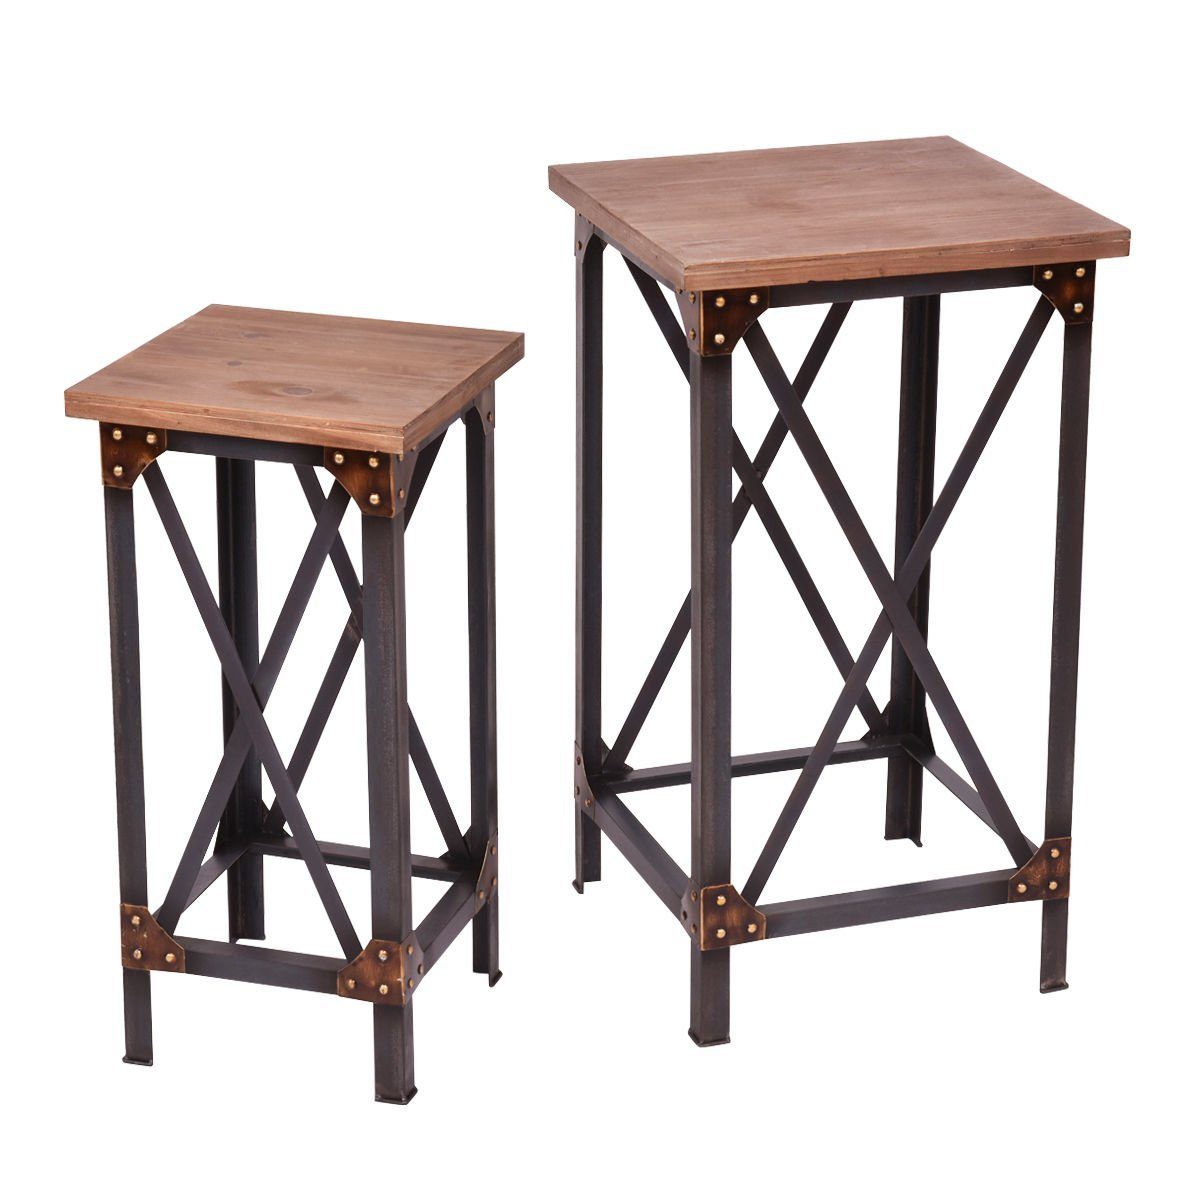 rustic wood accent tables find metal table get quotations set industrial side end plant display stands patio umbrella tiffany style lighting and accents white chairside unique